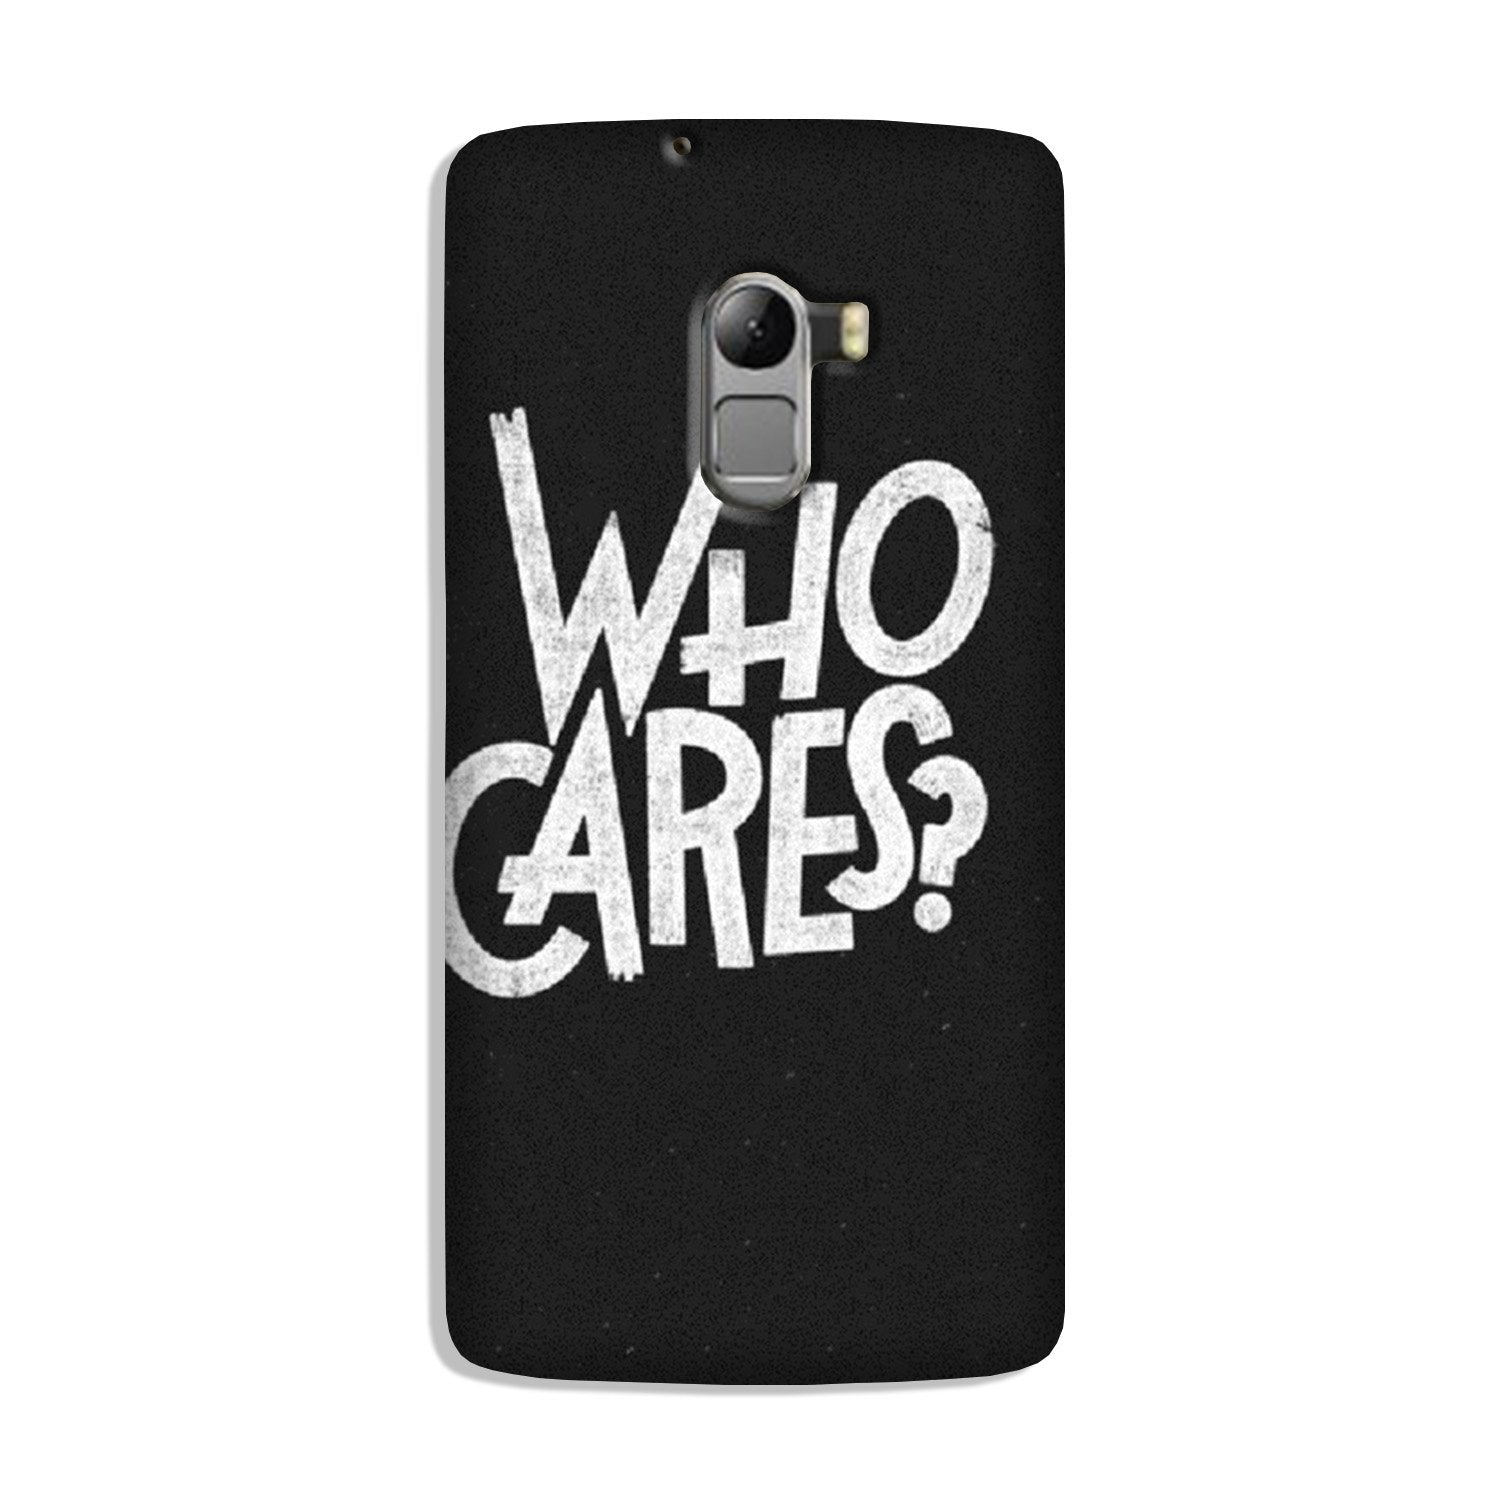 Who Cares Case for Lenovo K4 Note